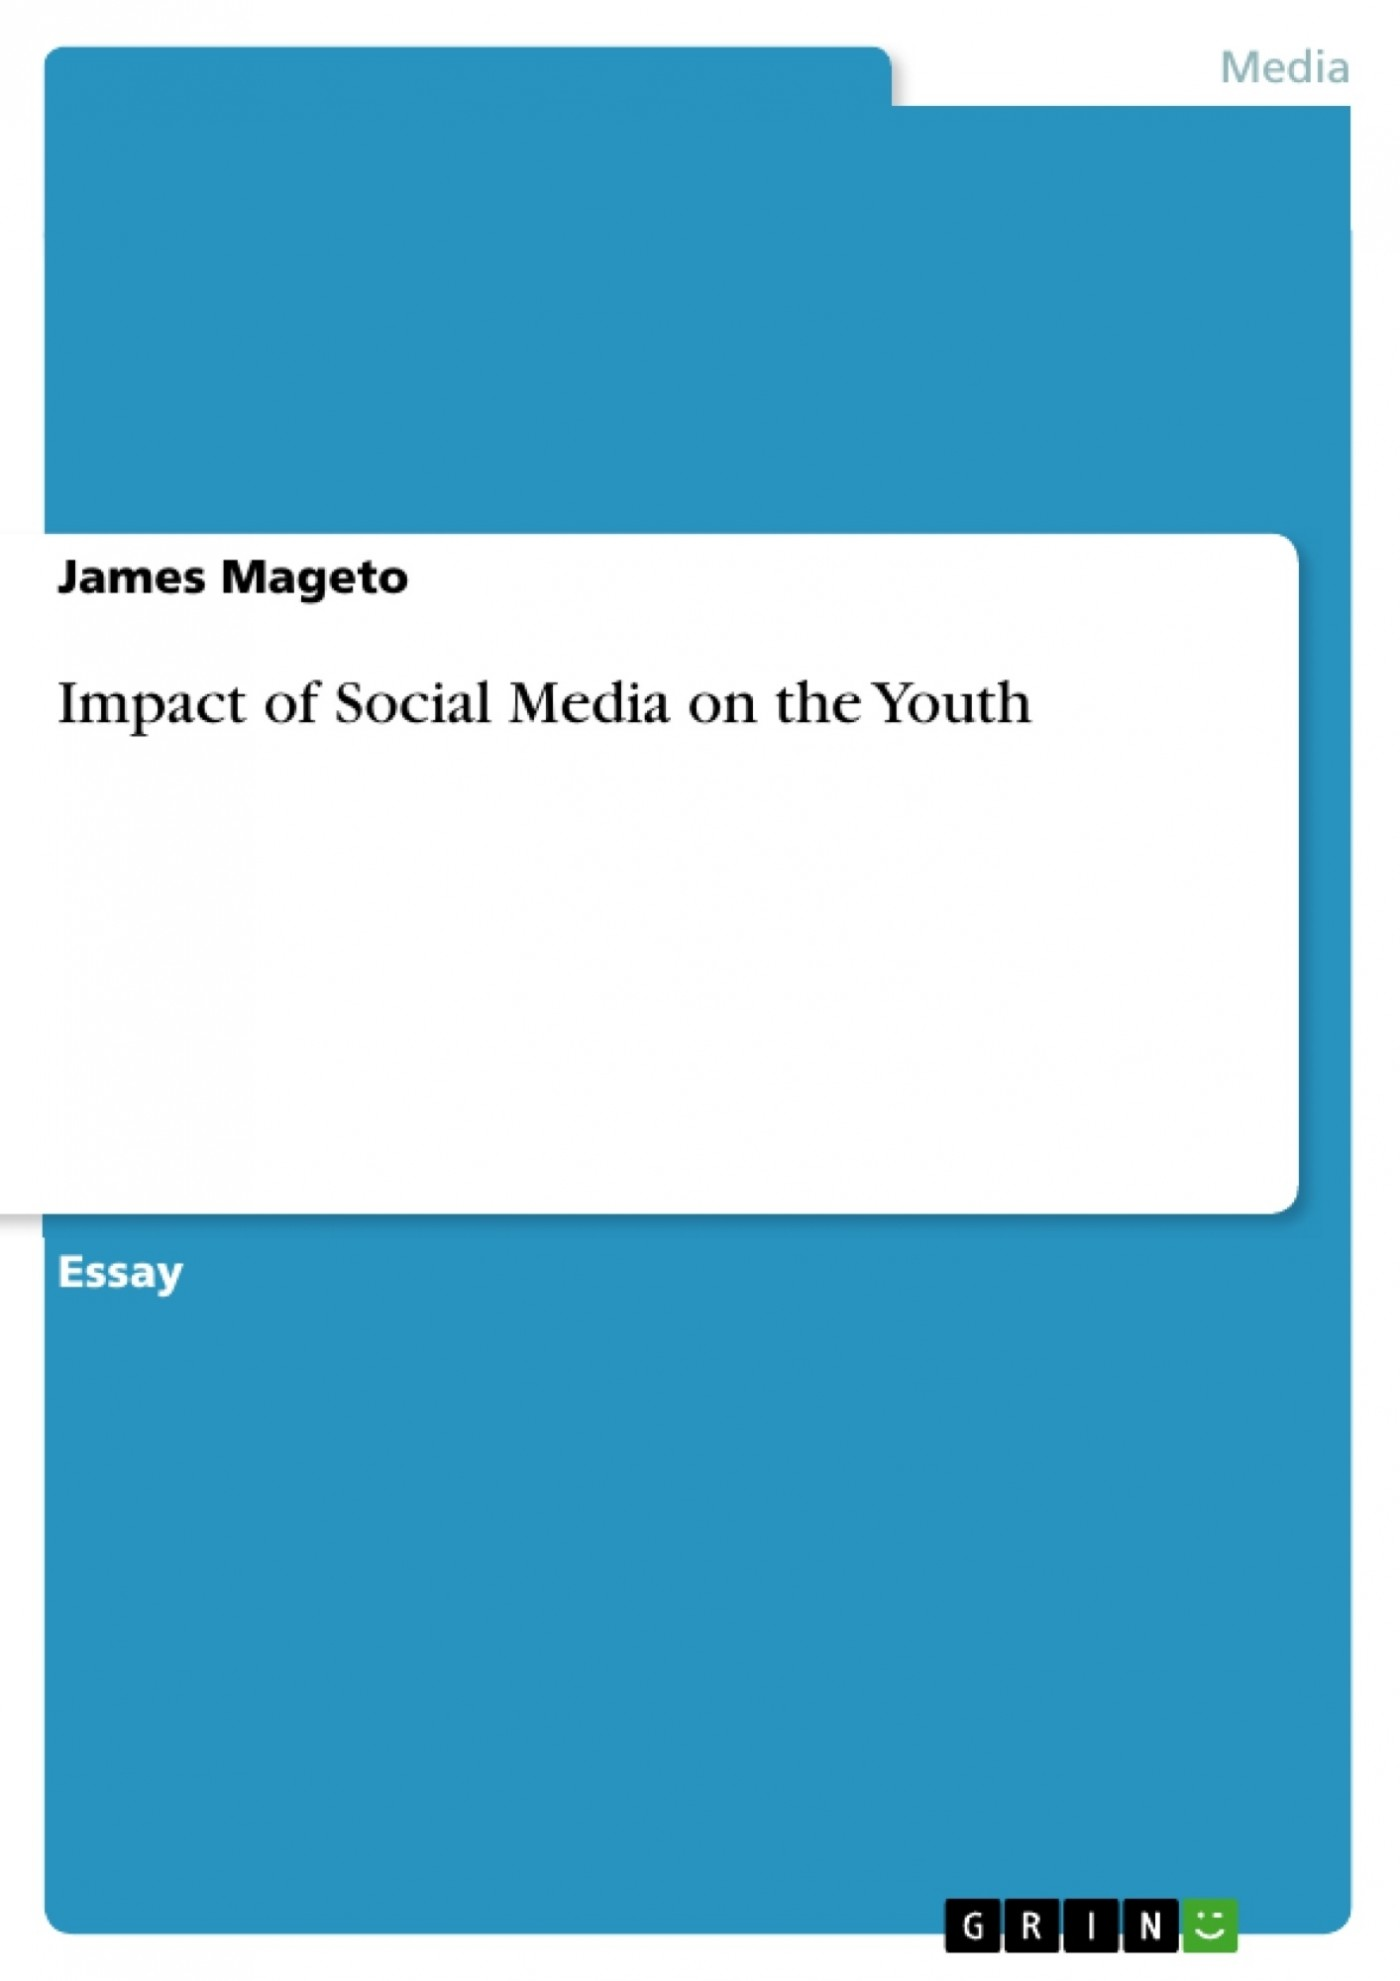 020 Research Paper Conclusion For About Social Media 358350 0 Awful 1400